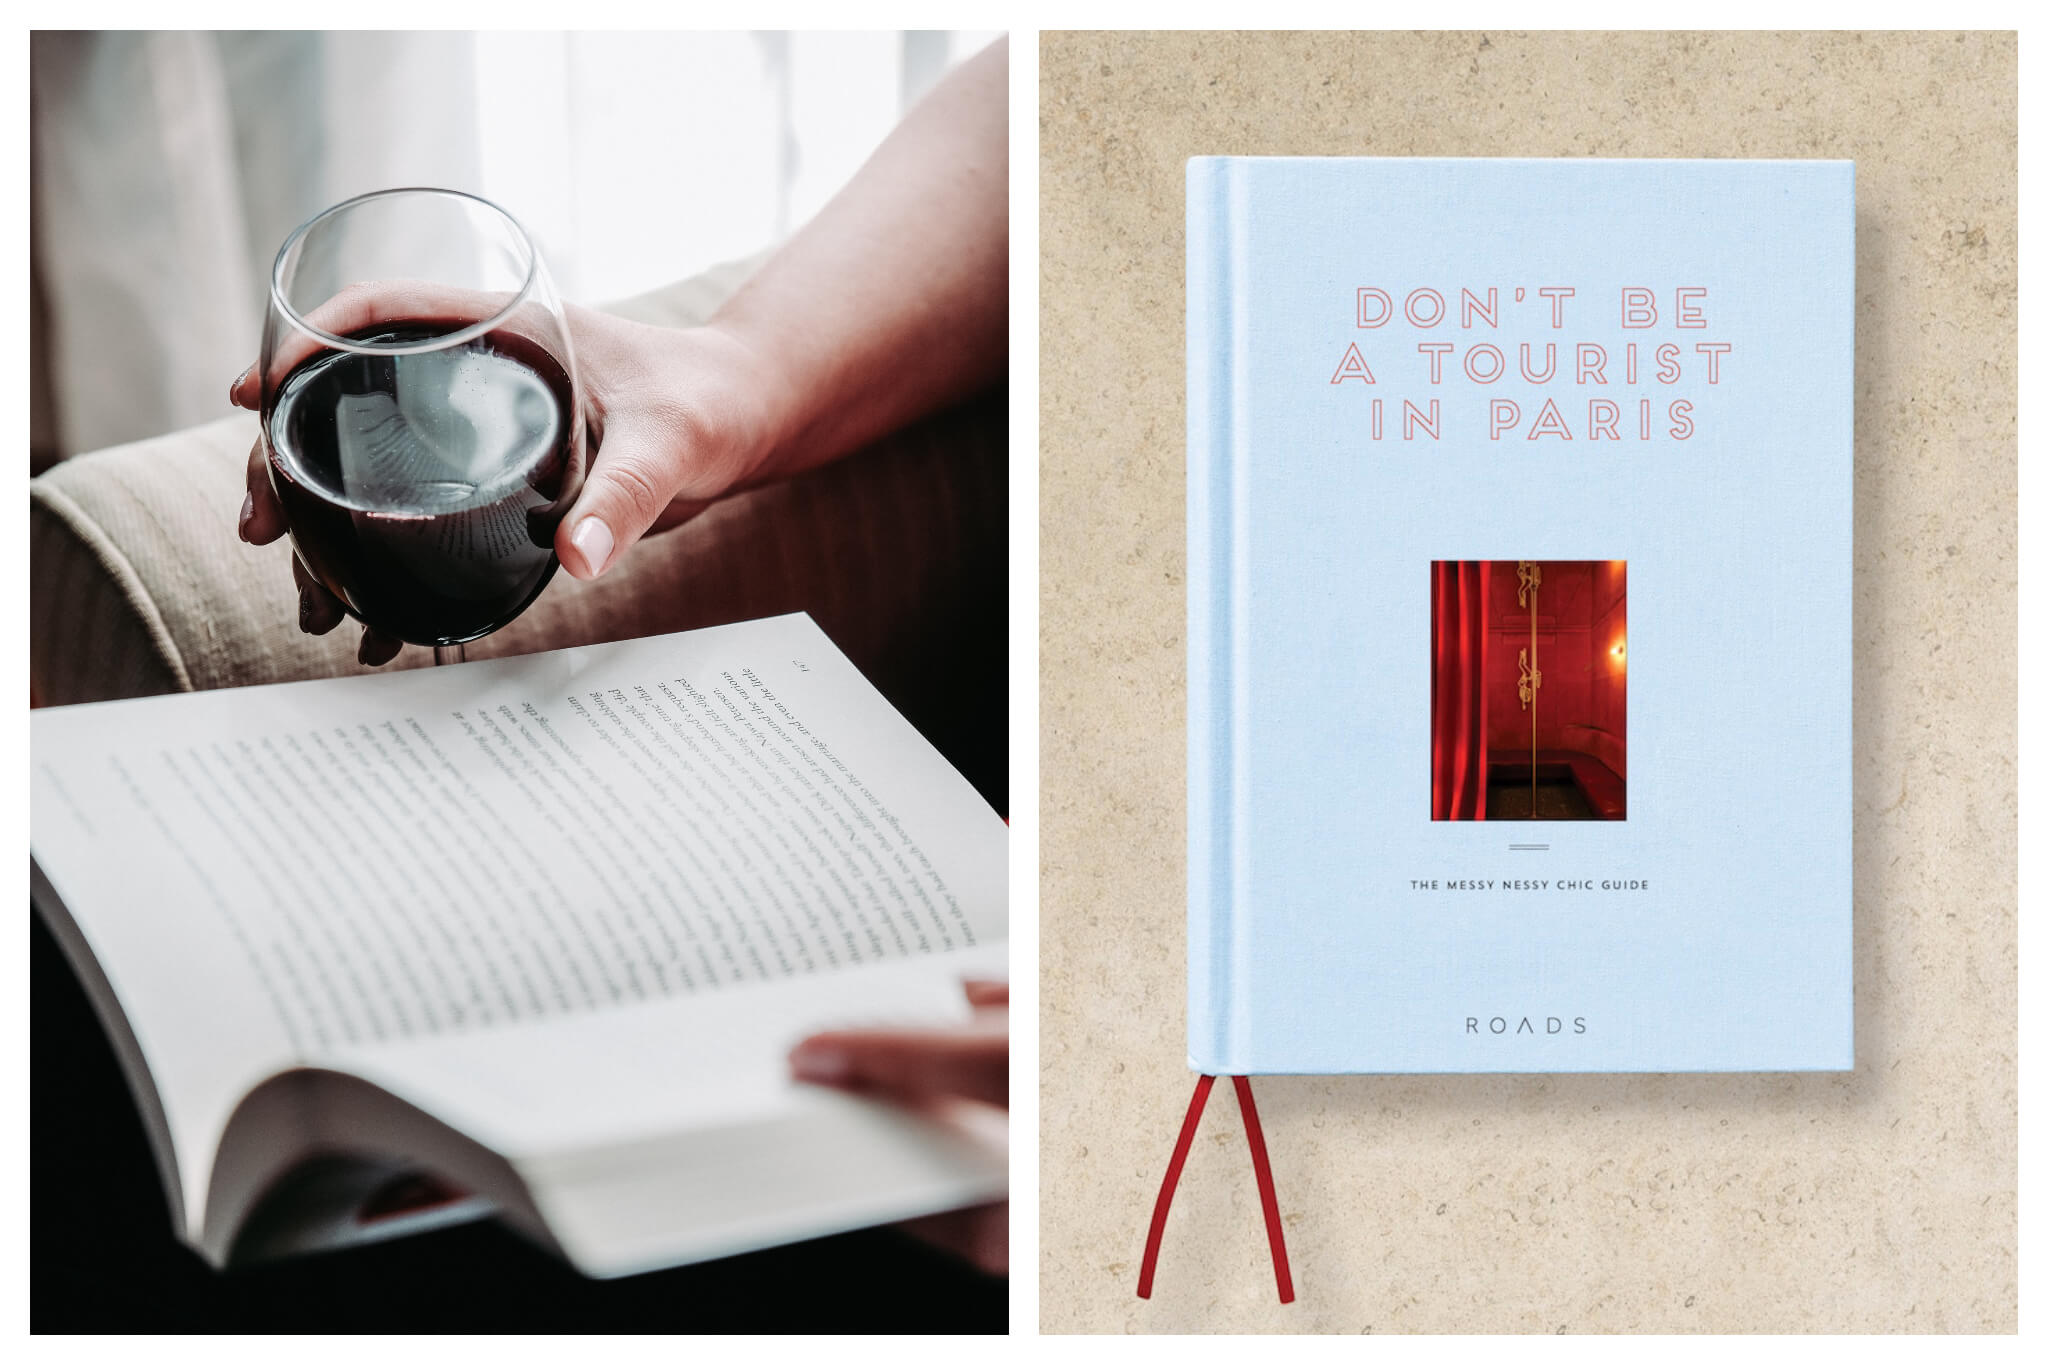 Left, someone reading a book with a glass of red wine in hand during the Coronavirus confinement. Right, a copy of Messy Nessy' 'Don't be a tourist in Paris' guidebook about Paris.